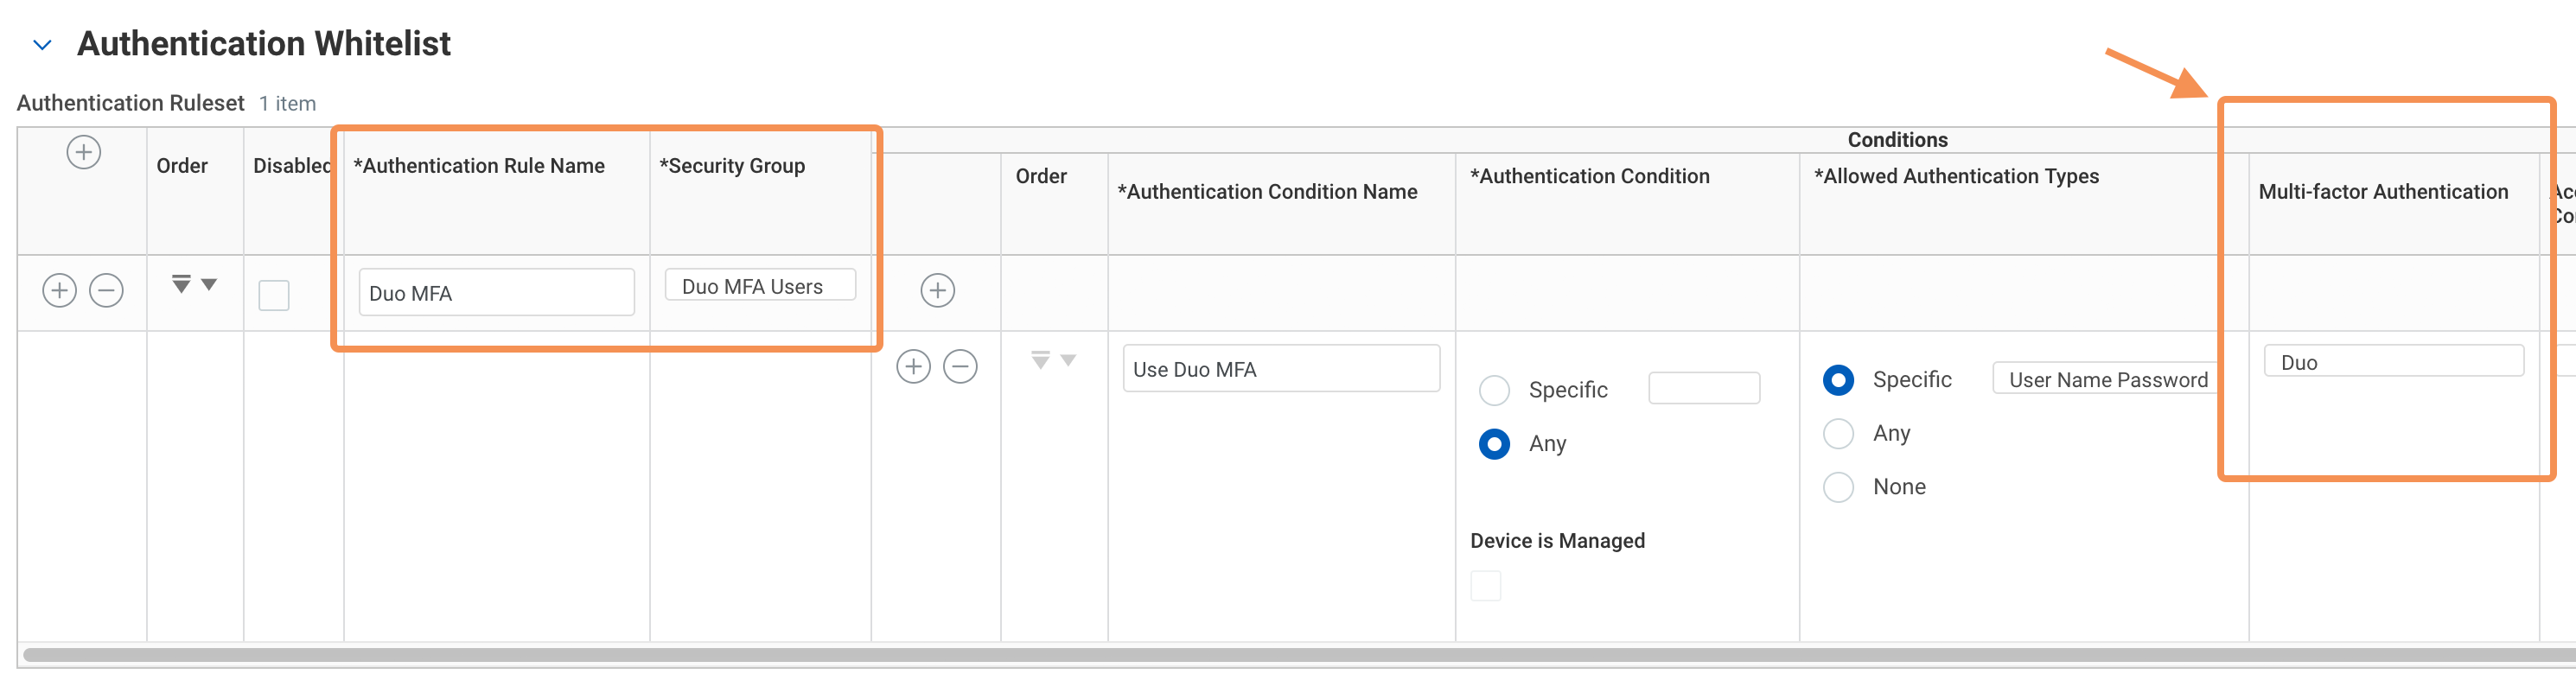 Duo Protection for Workday | Duo Security